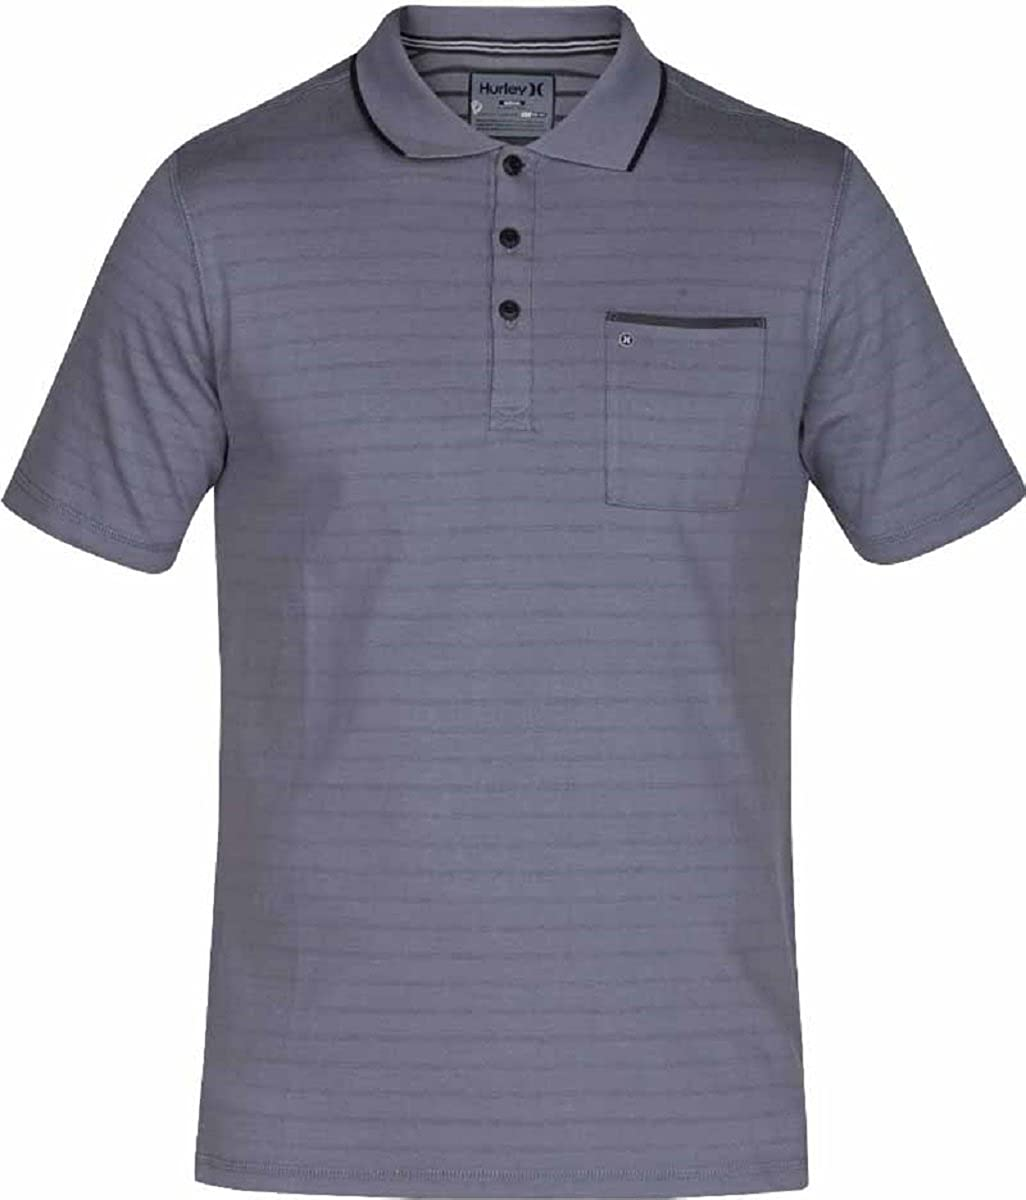 0126b42f7fb Dress yourself up in classic stripes with the Hurley® Dri-FIT® Hype Polo  Shirt. This cotton-poly blend polo can be worn from office to golf course  with its ...